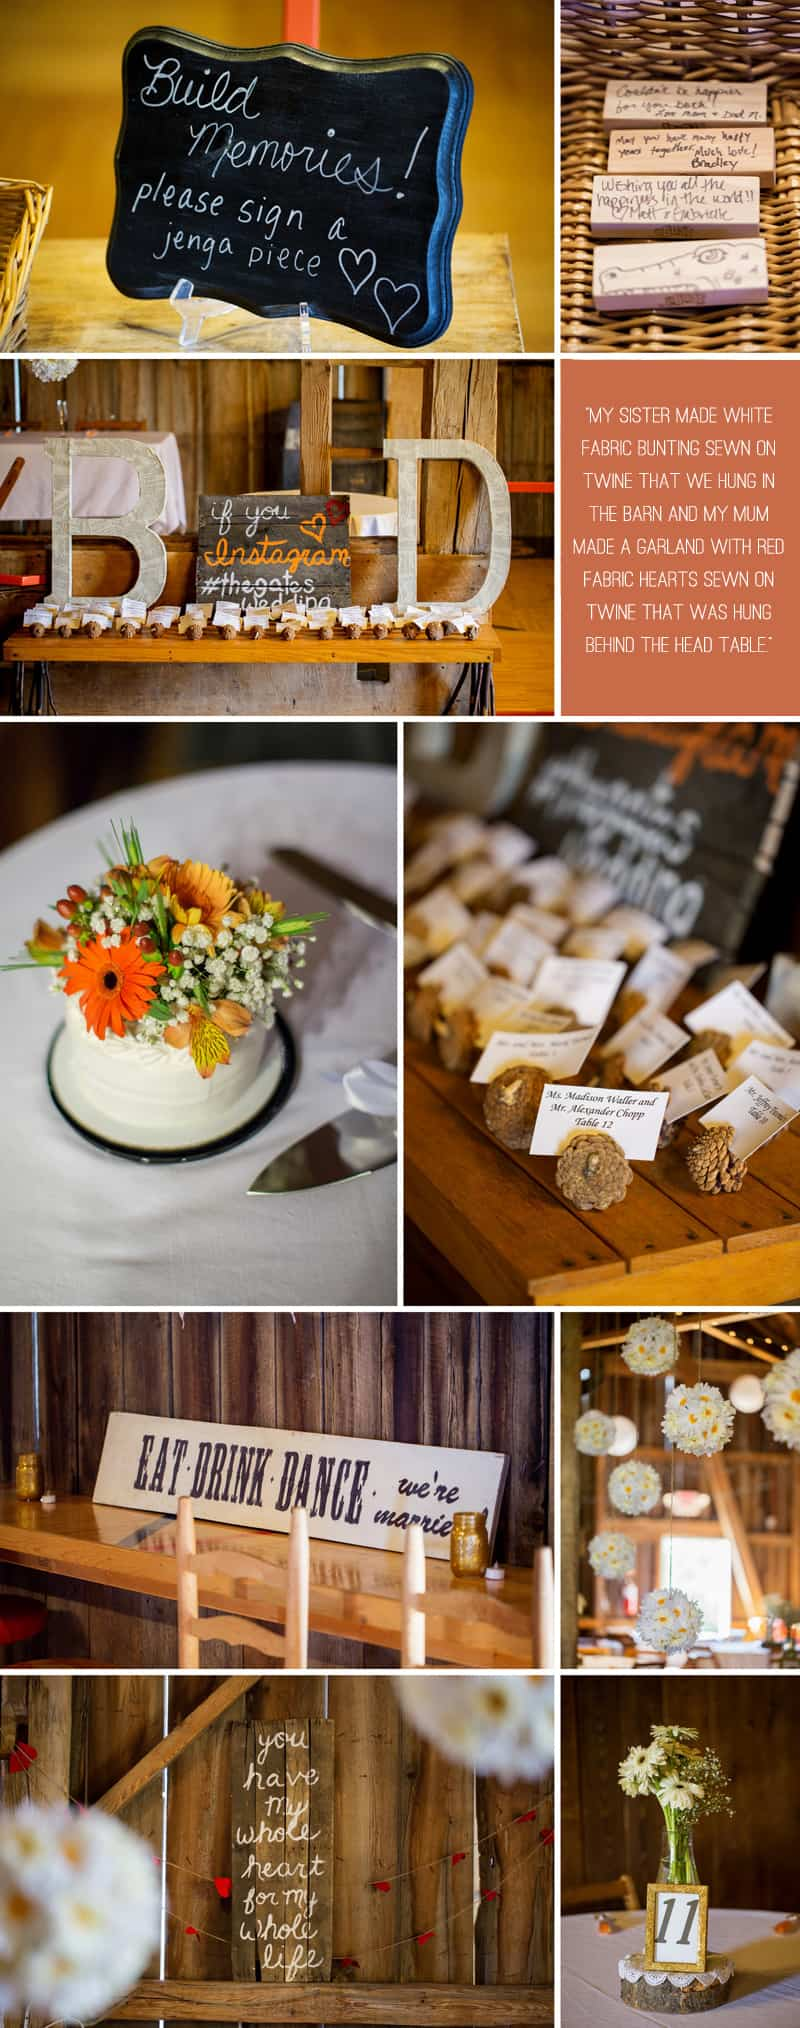 A Romantic Fall Wedding in a Rustic Barn 6